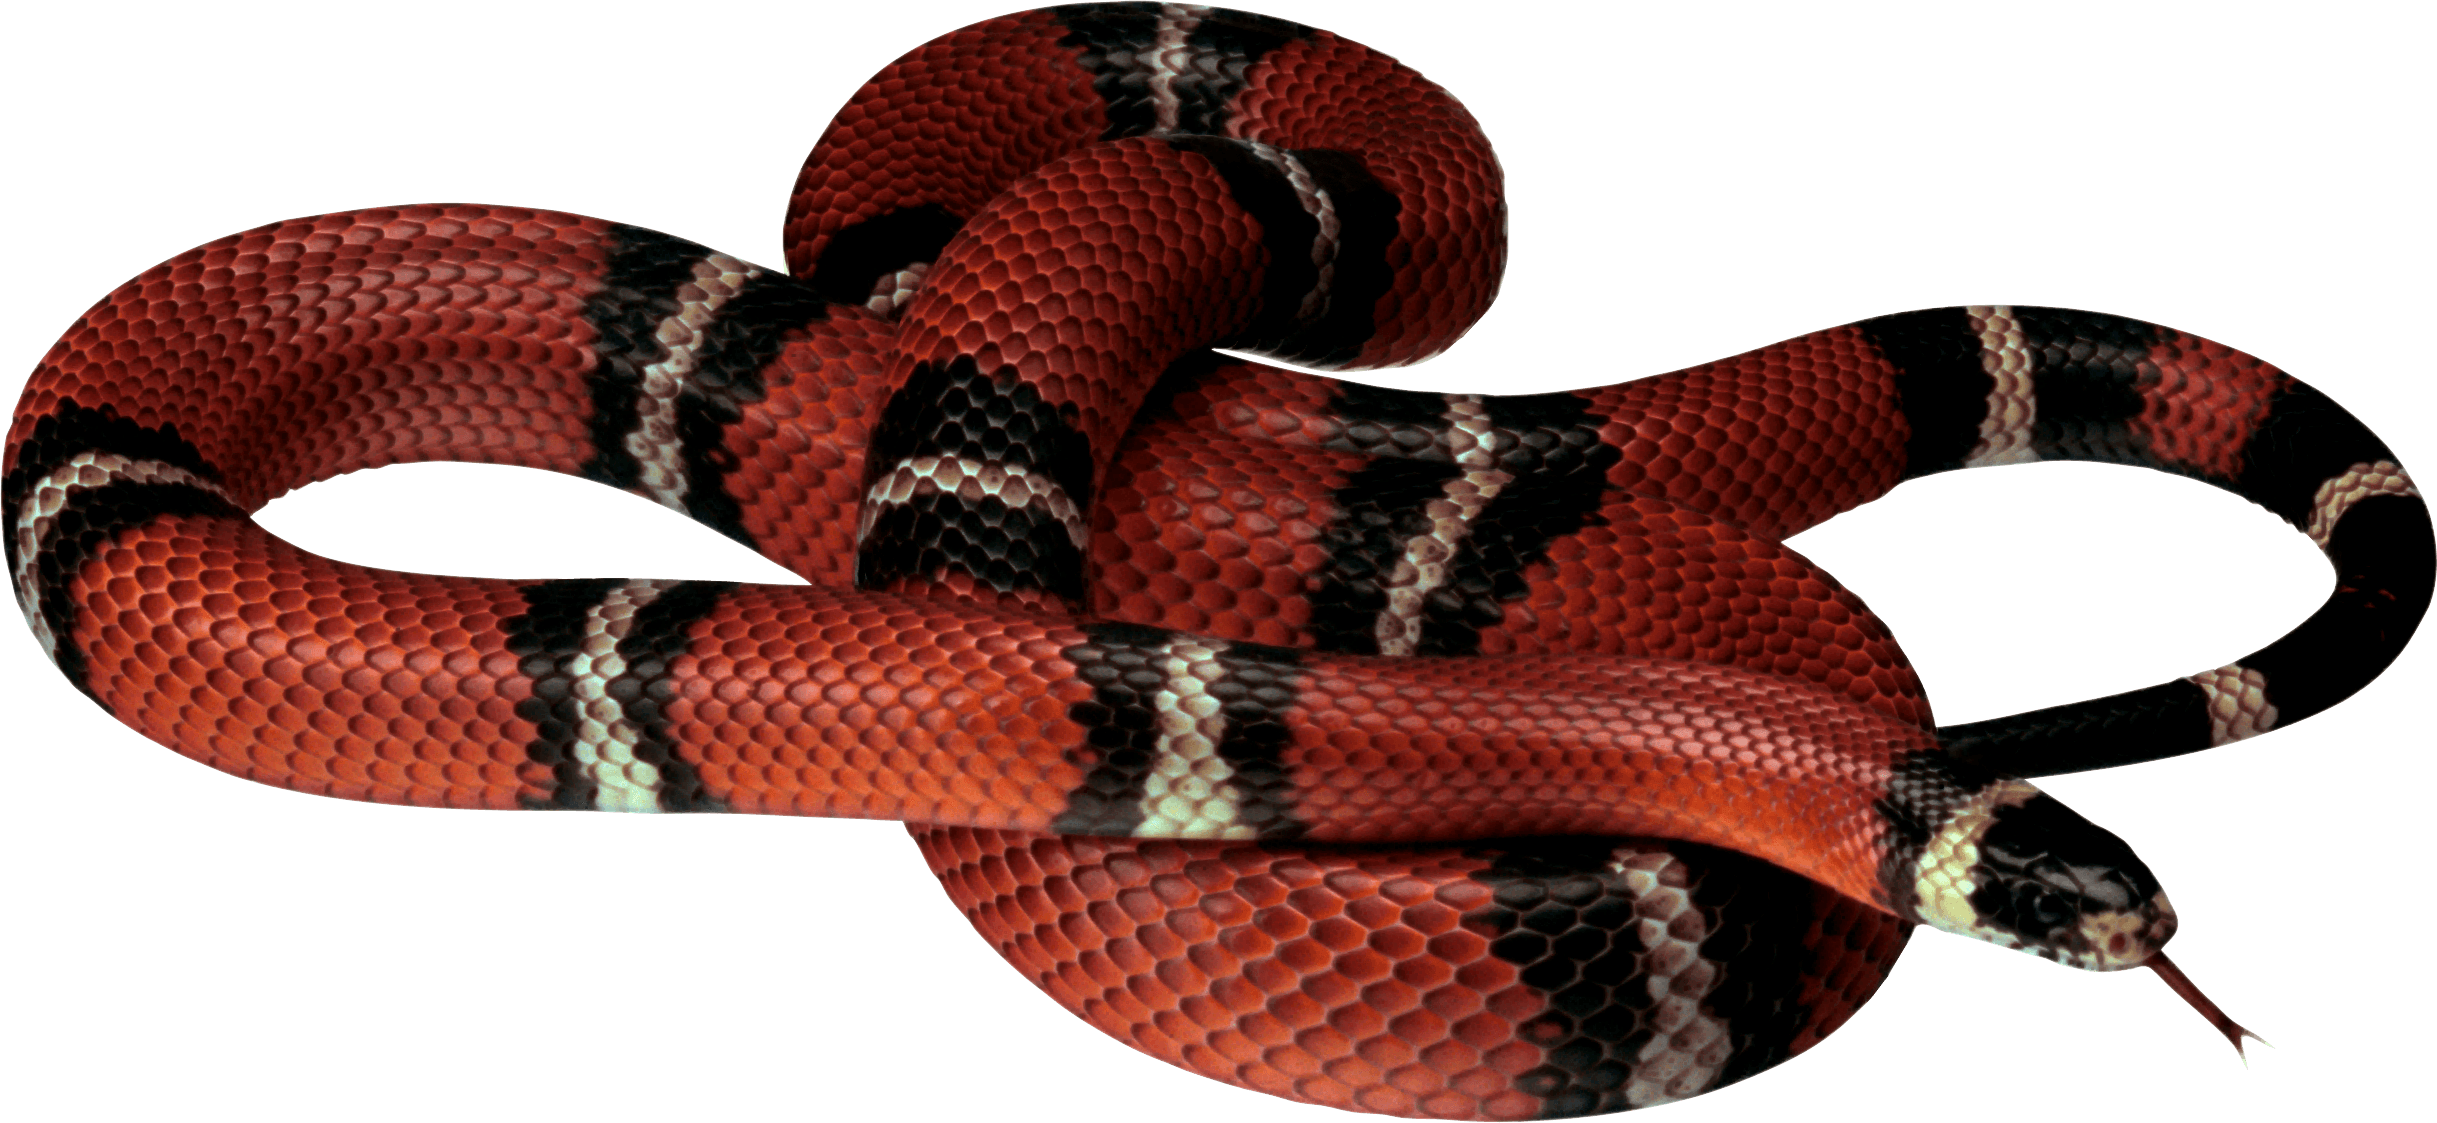 Red white black png. Clipart snake king snake